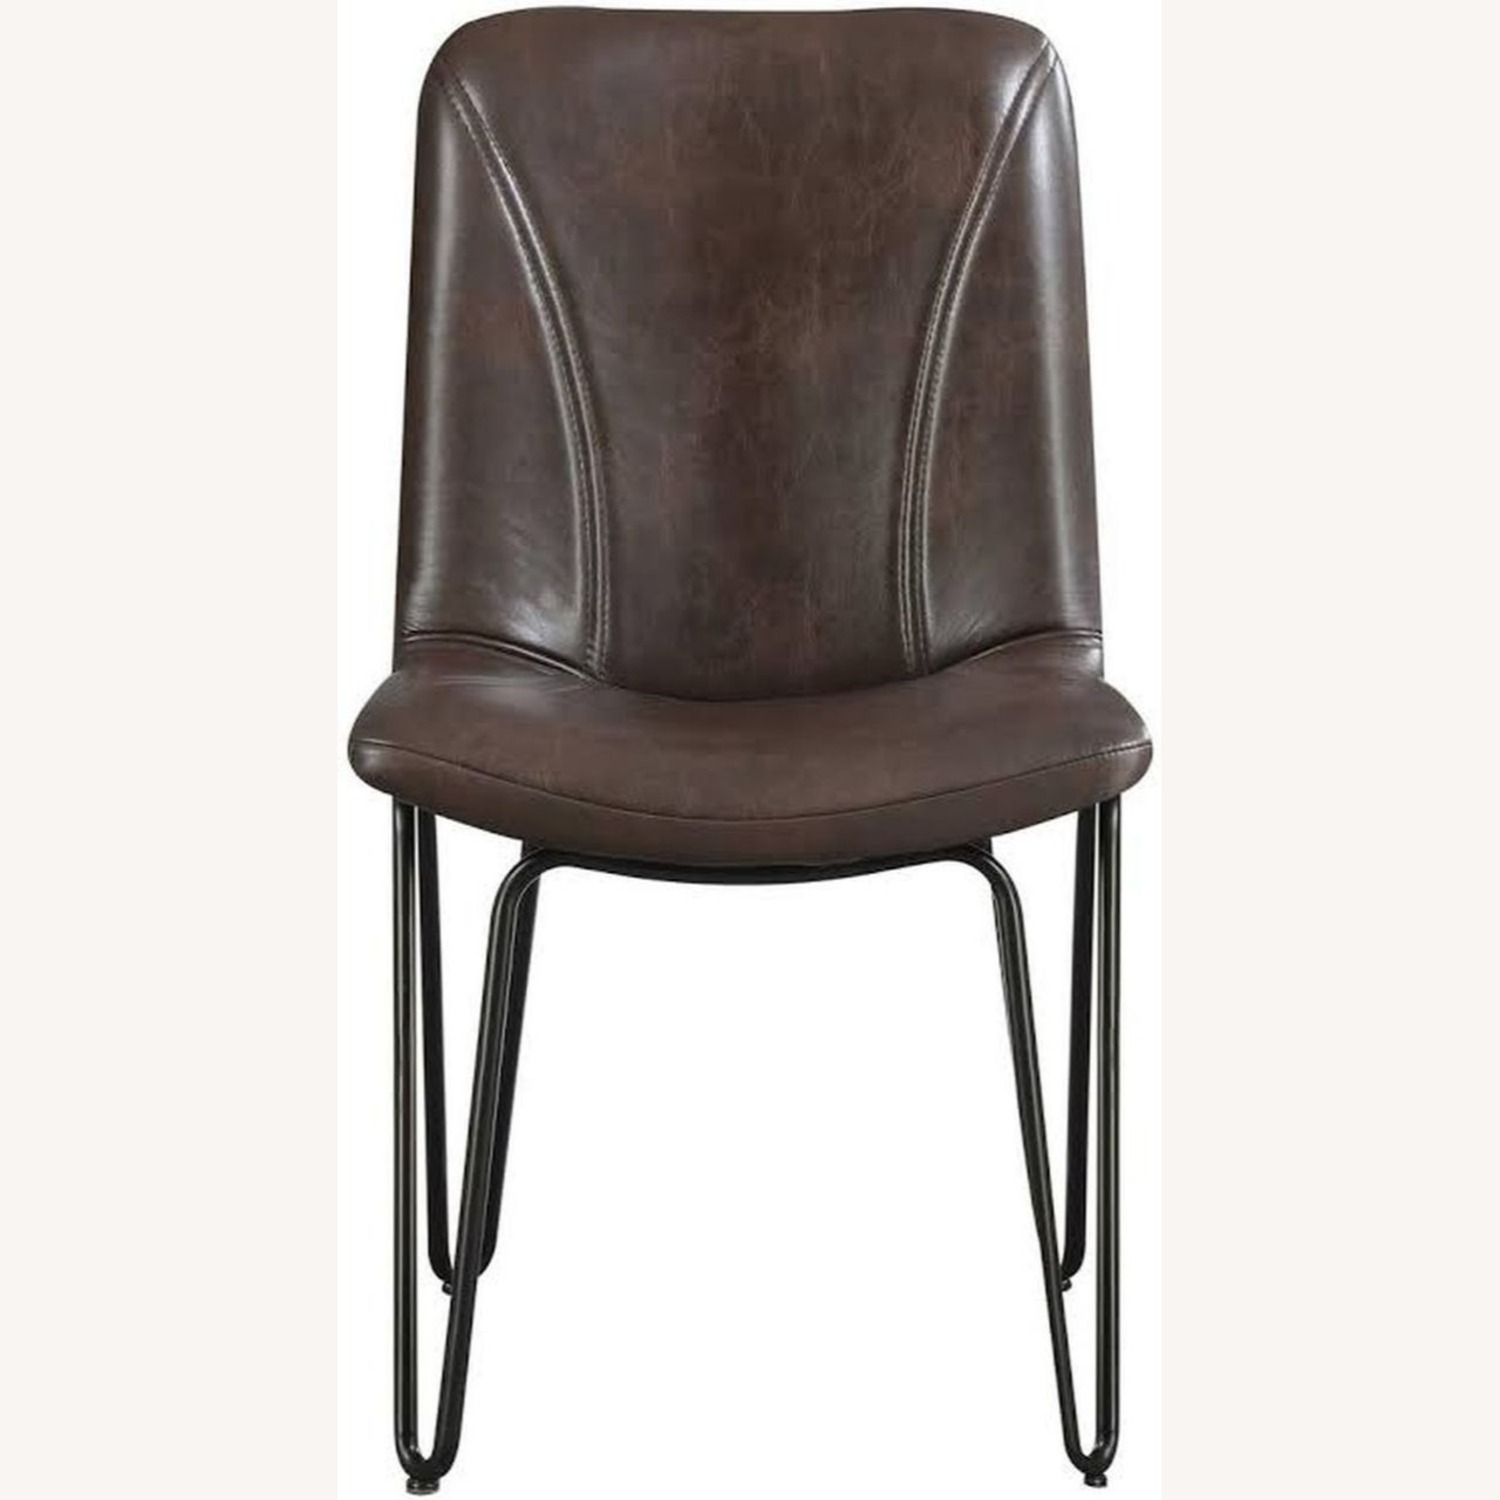 Modern Side Chair Wrapped In Brown Leatherette - image-1